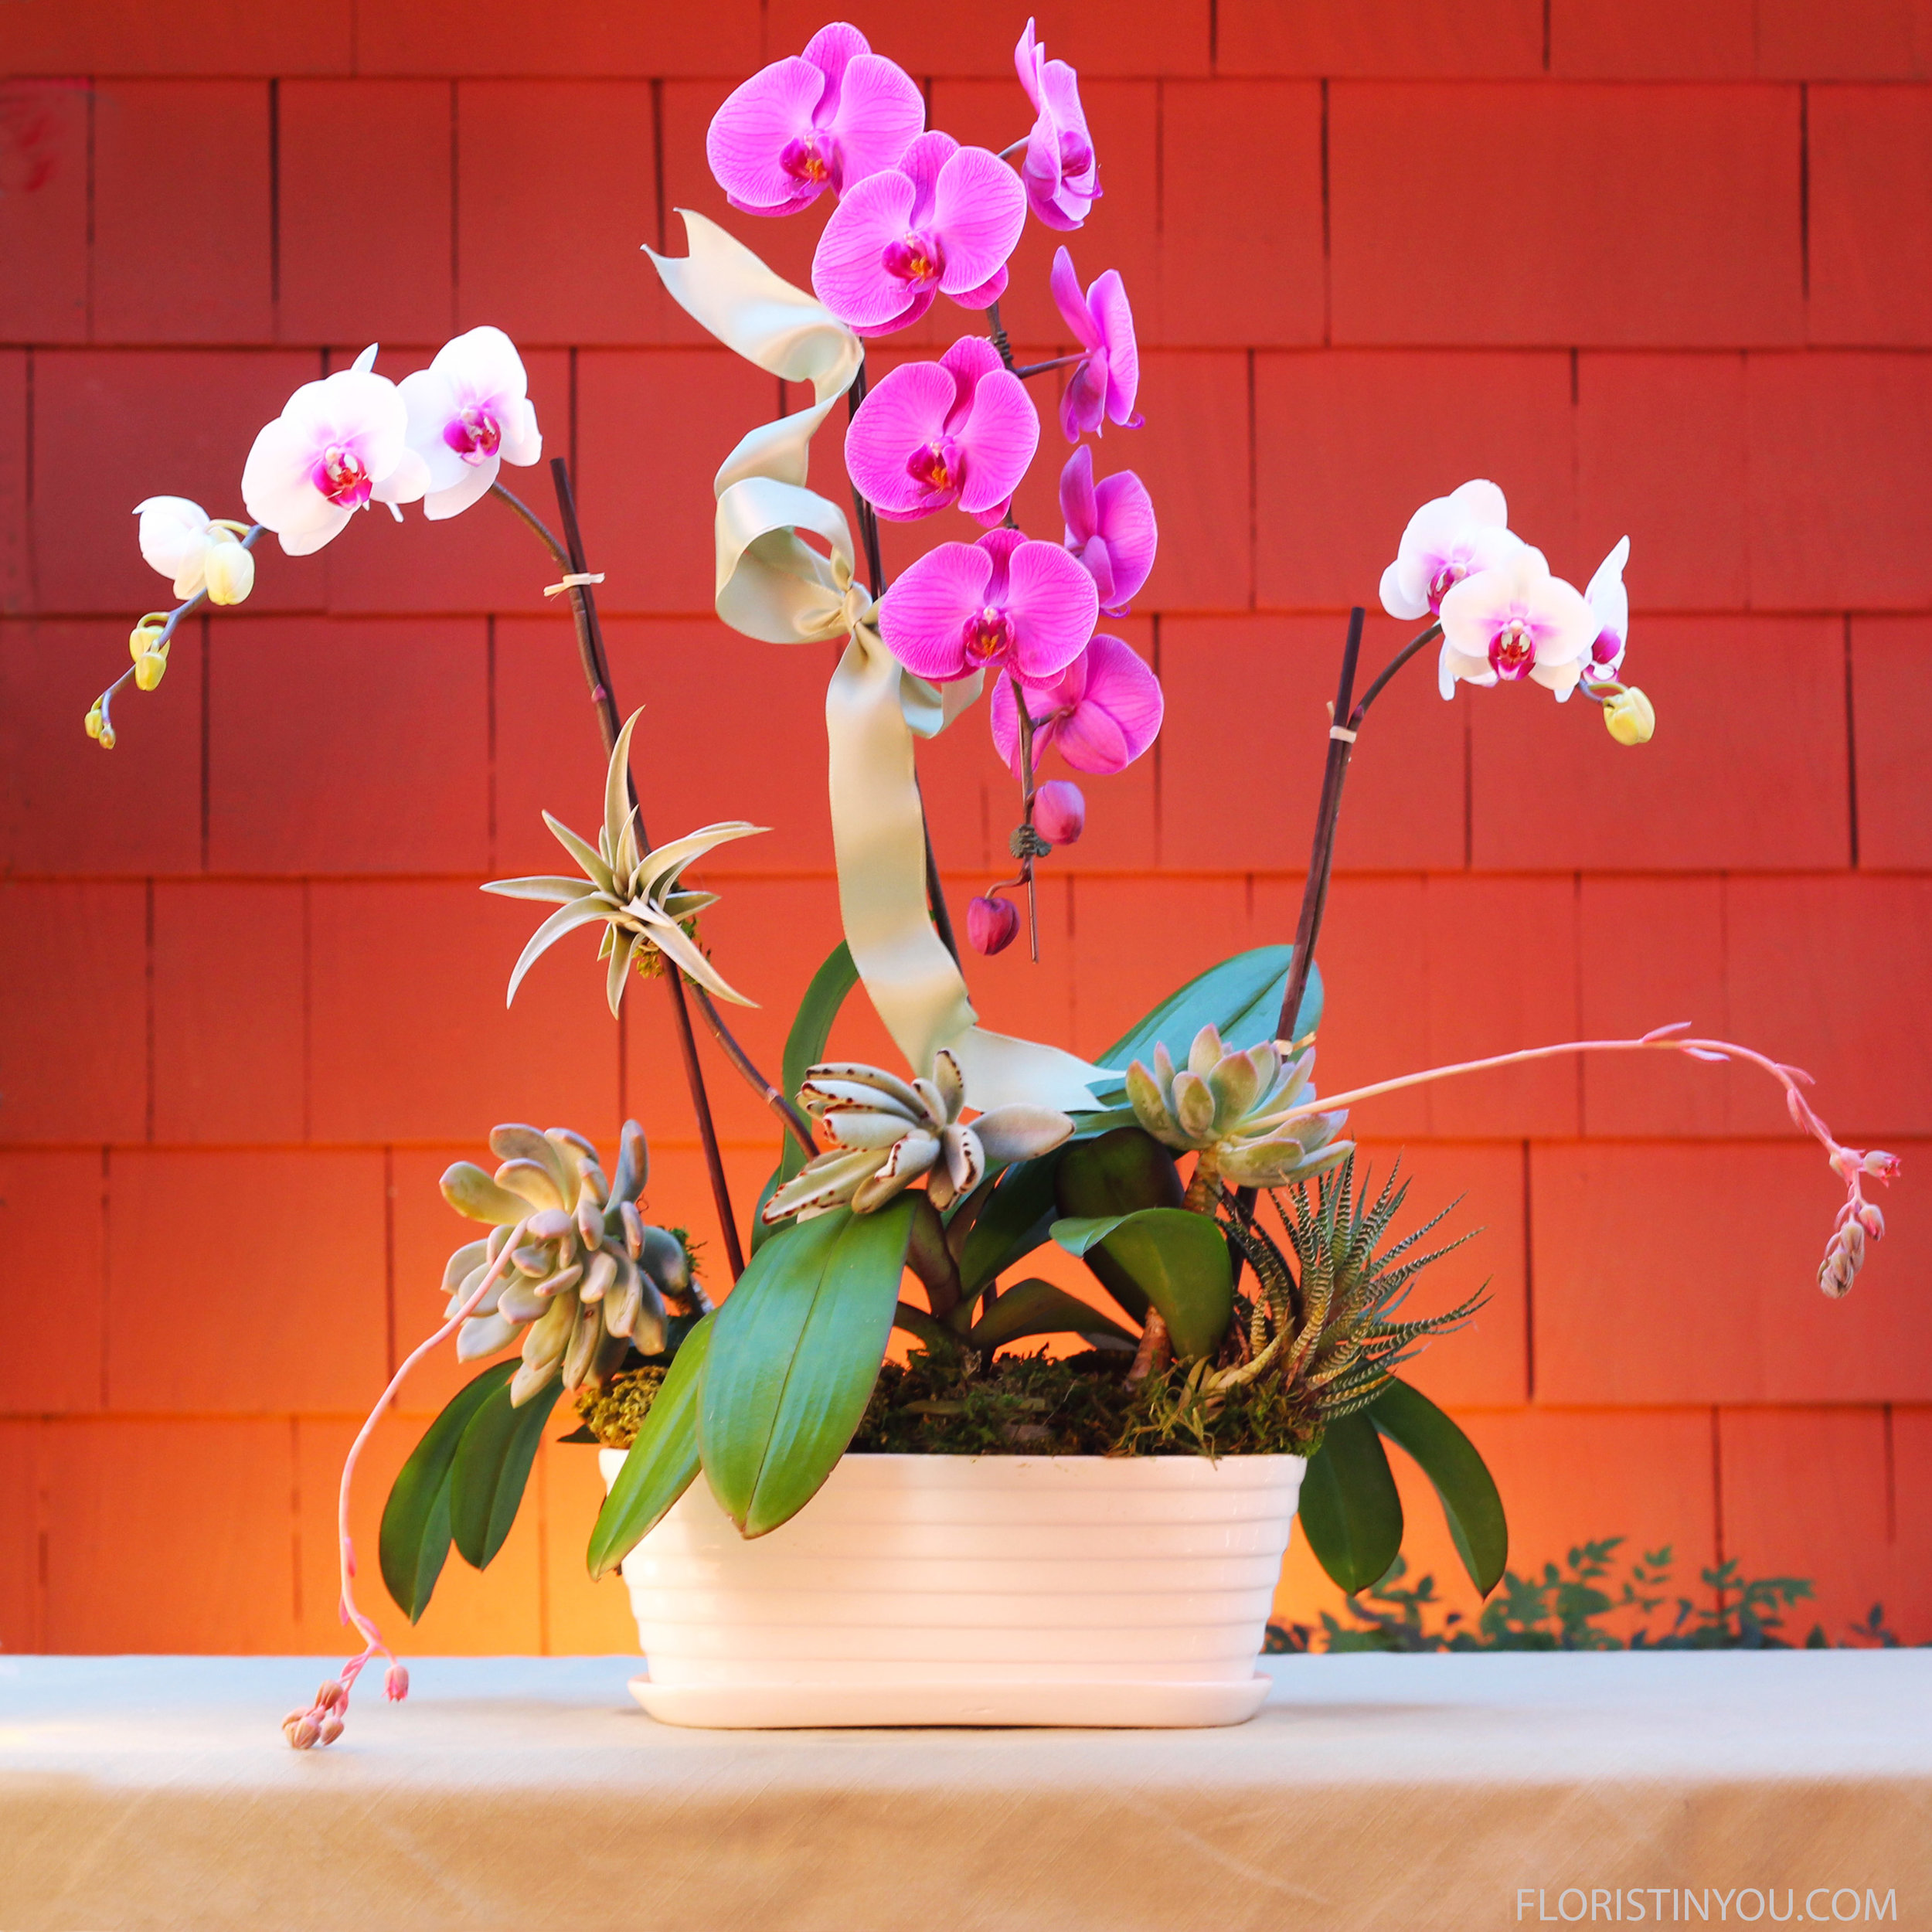 You are done with this orchid and succulent garden. Enjoy it.